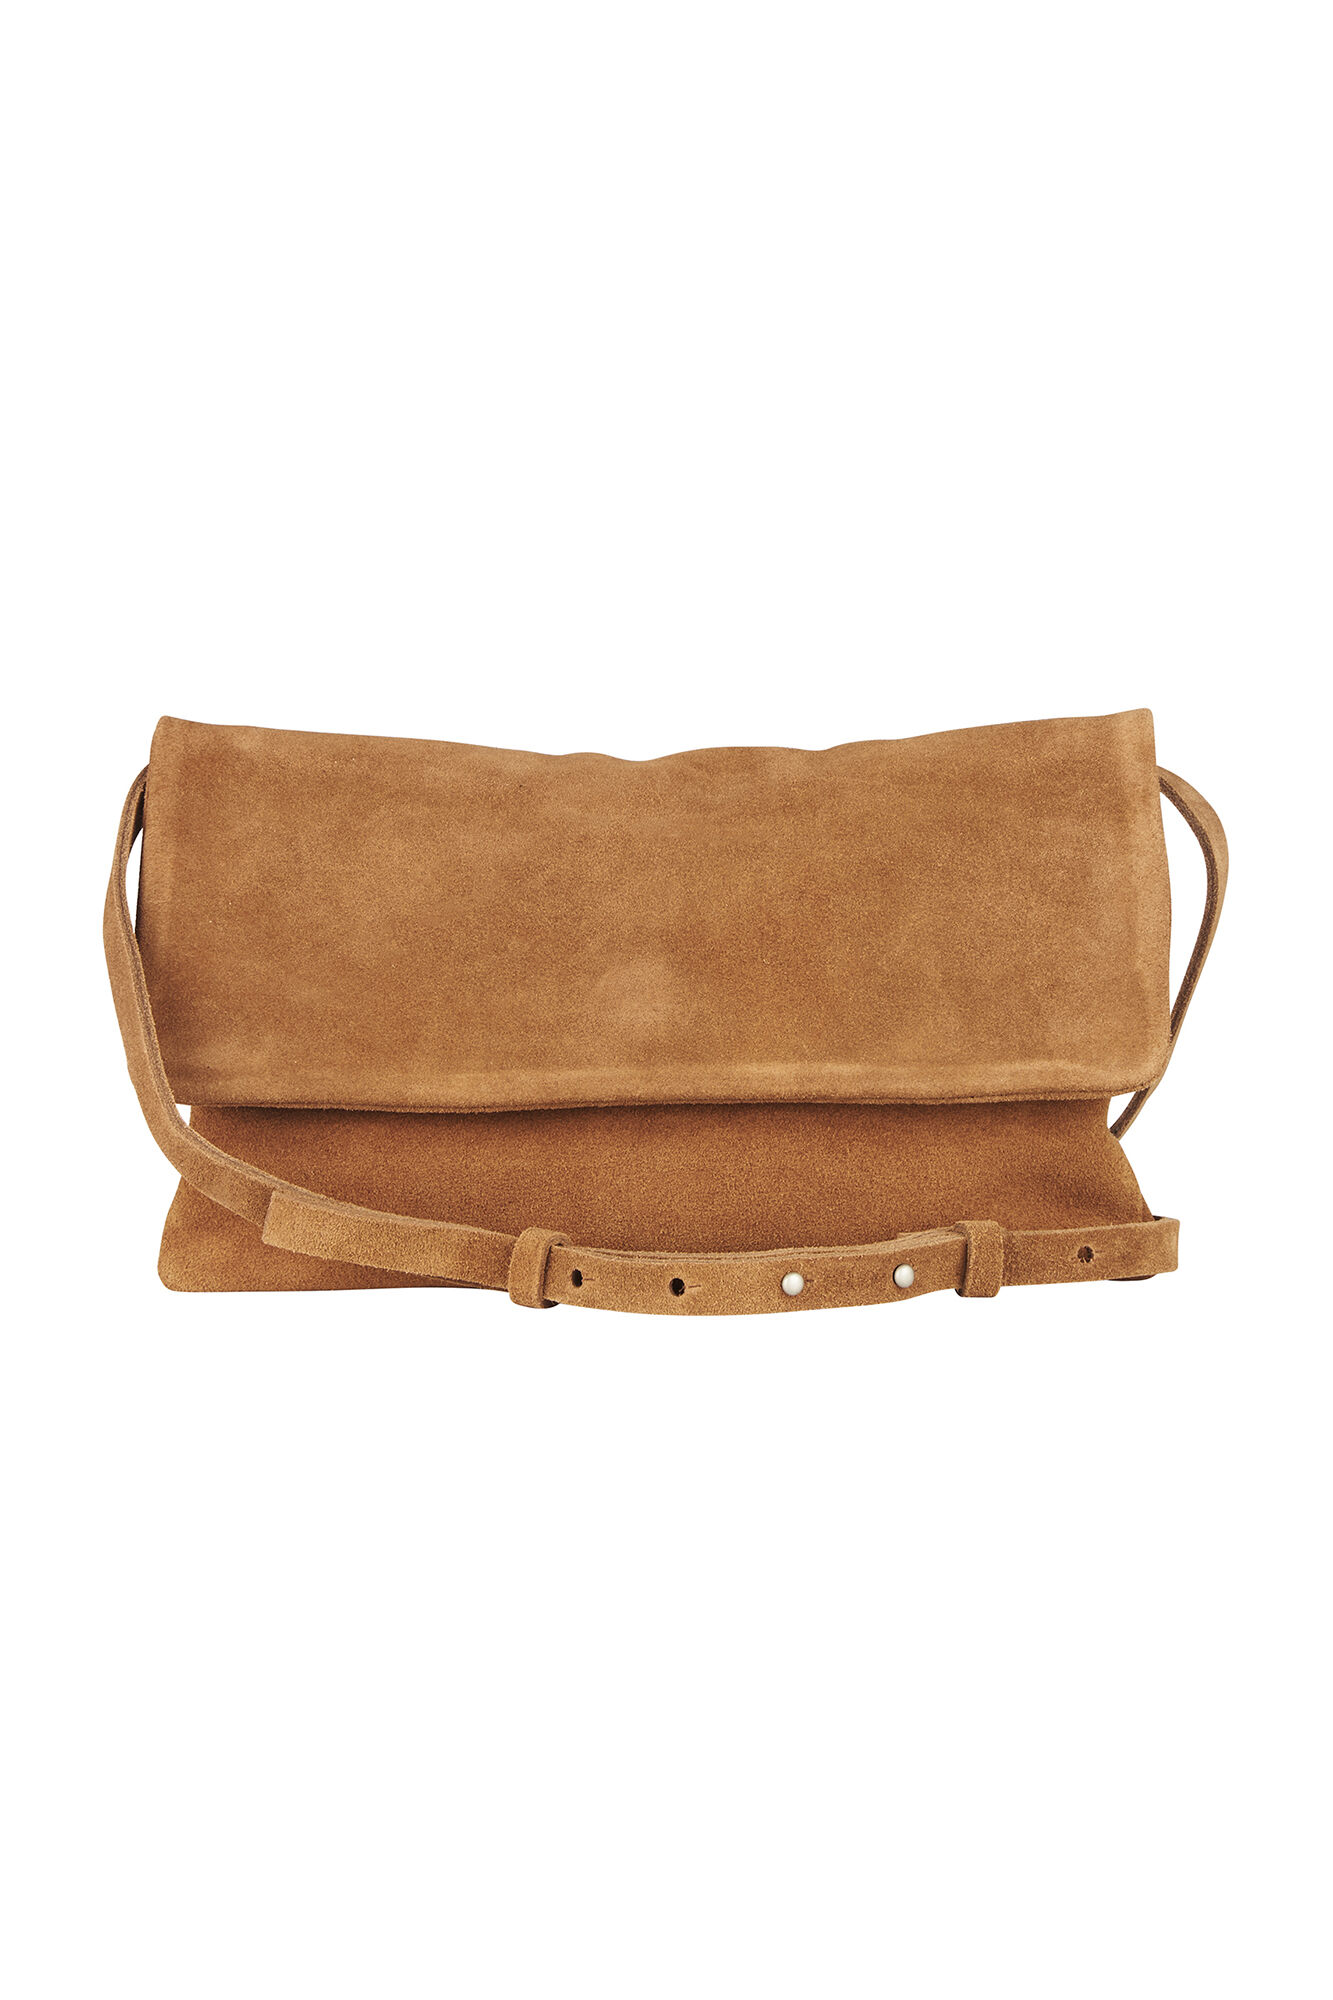 WILFRED SUEDE CLUTCH 5602, COGNAC BROWN